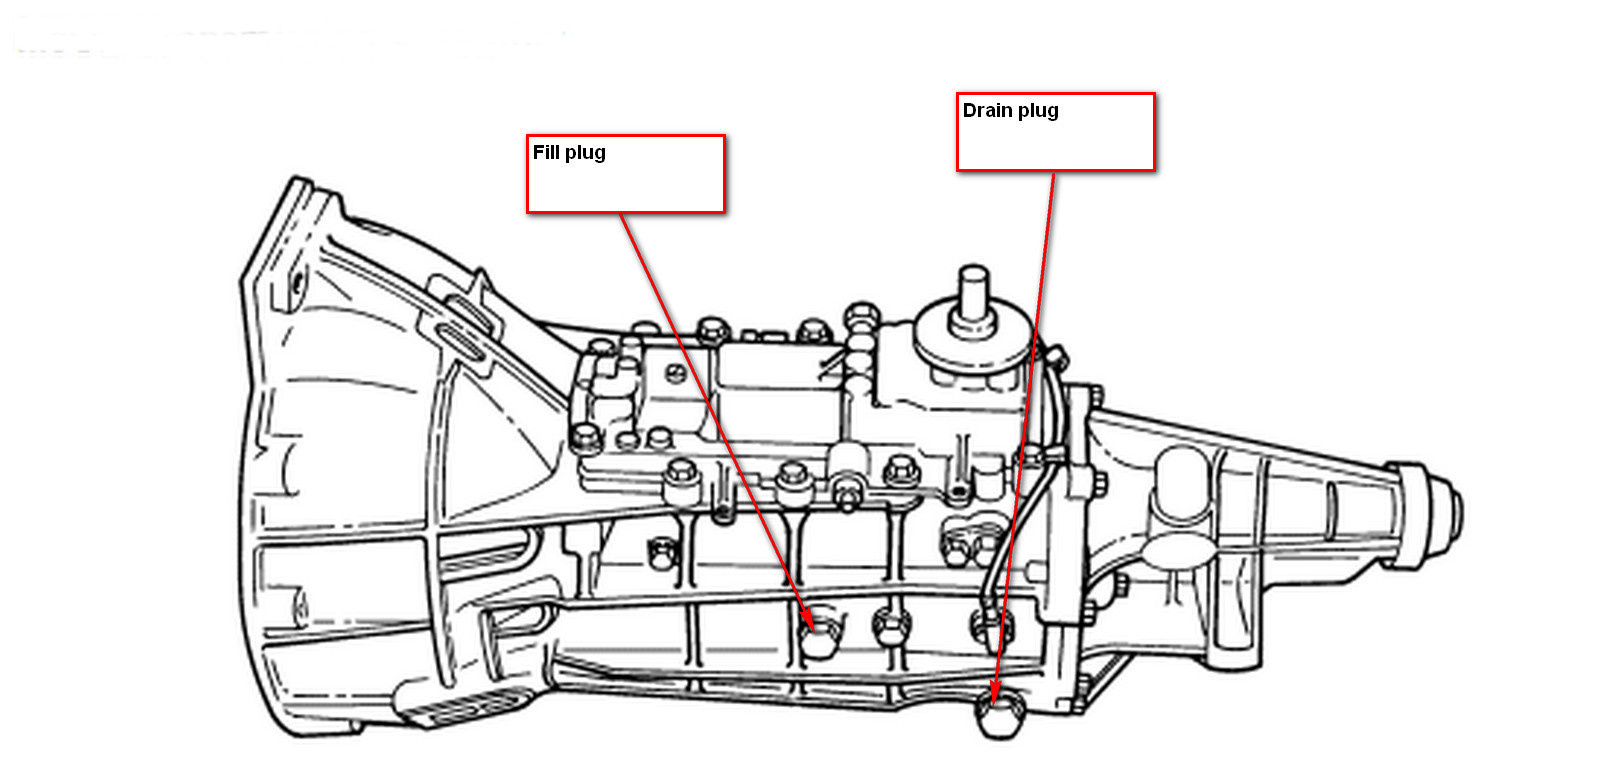 1987 toyota pickup manual transmission diagram moreover